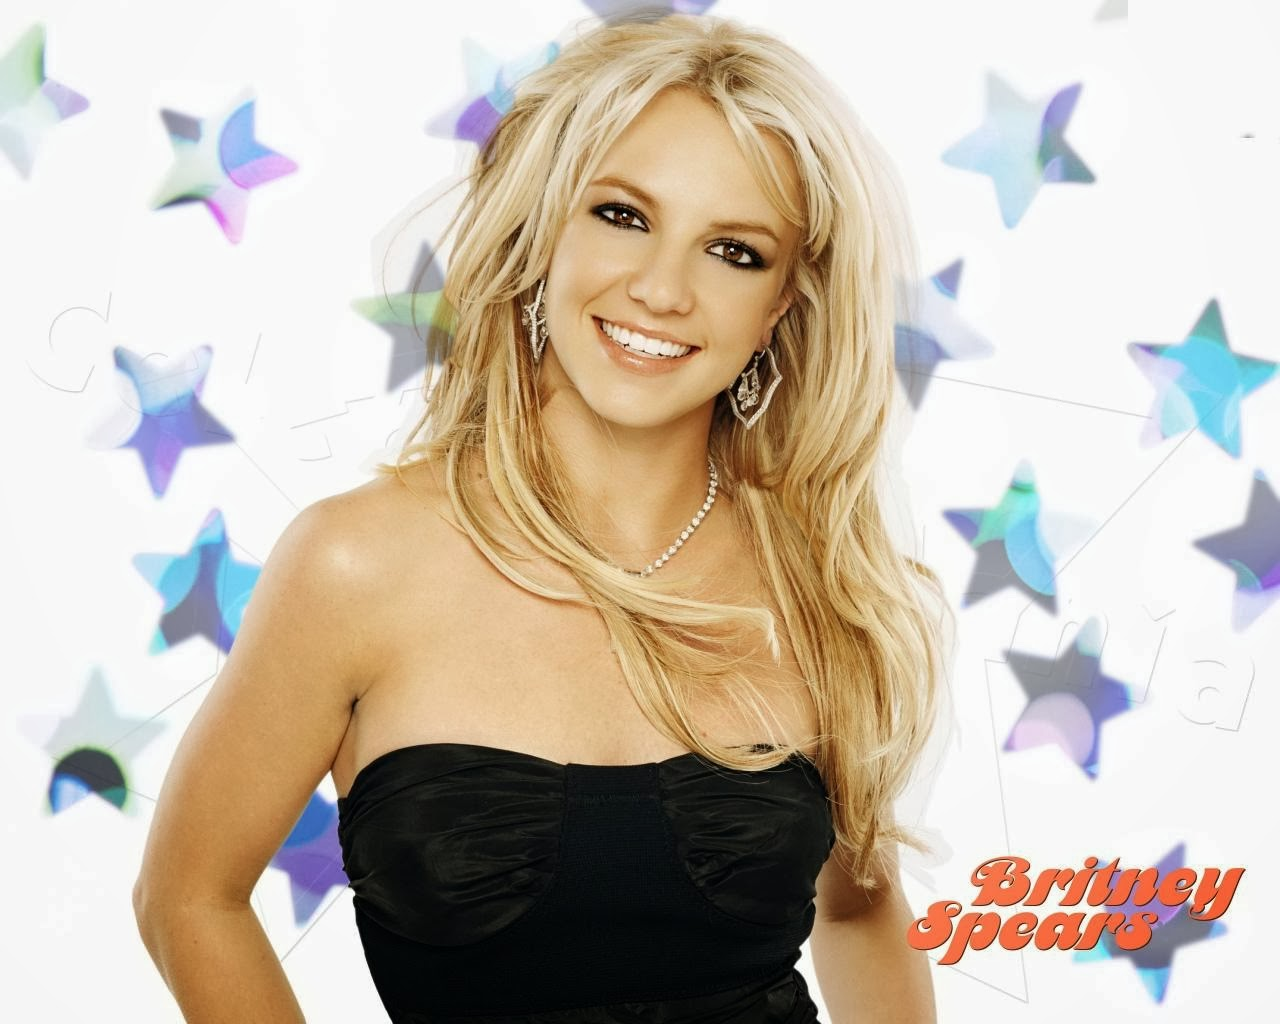 Star HD Wallpapers Free Download: Britney Spears Hd Wallpapers Free Download